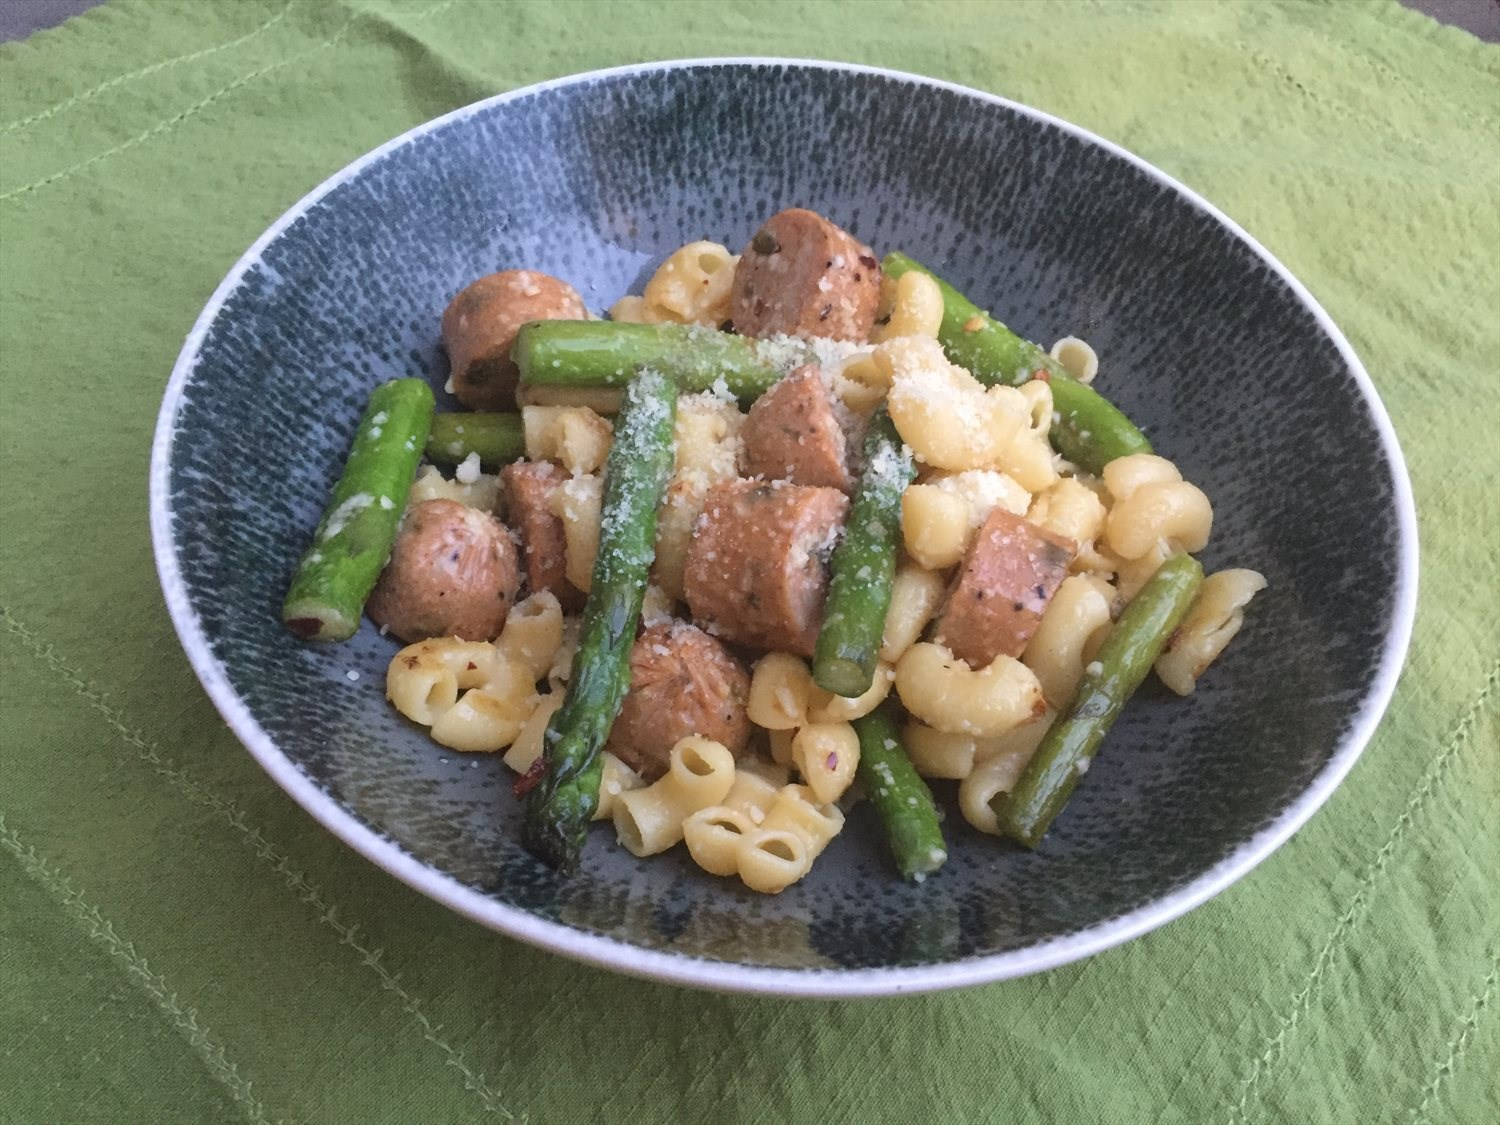 Sausage and Asparagus Pasta